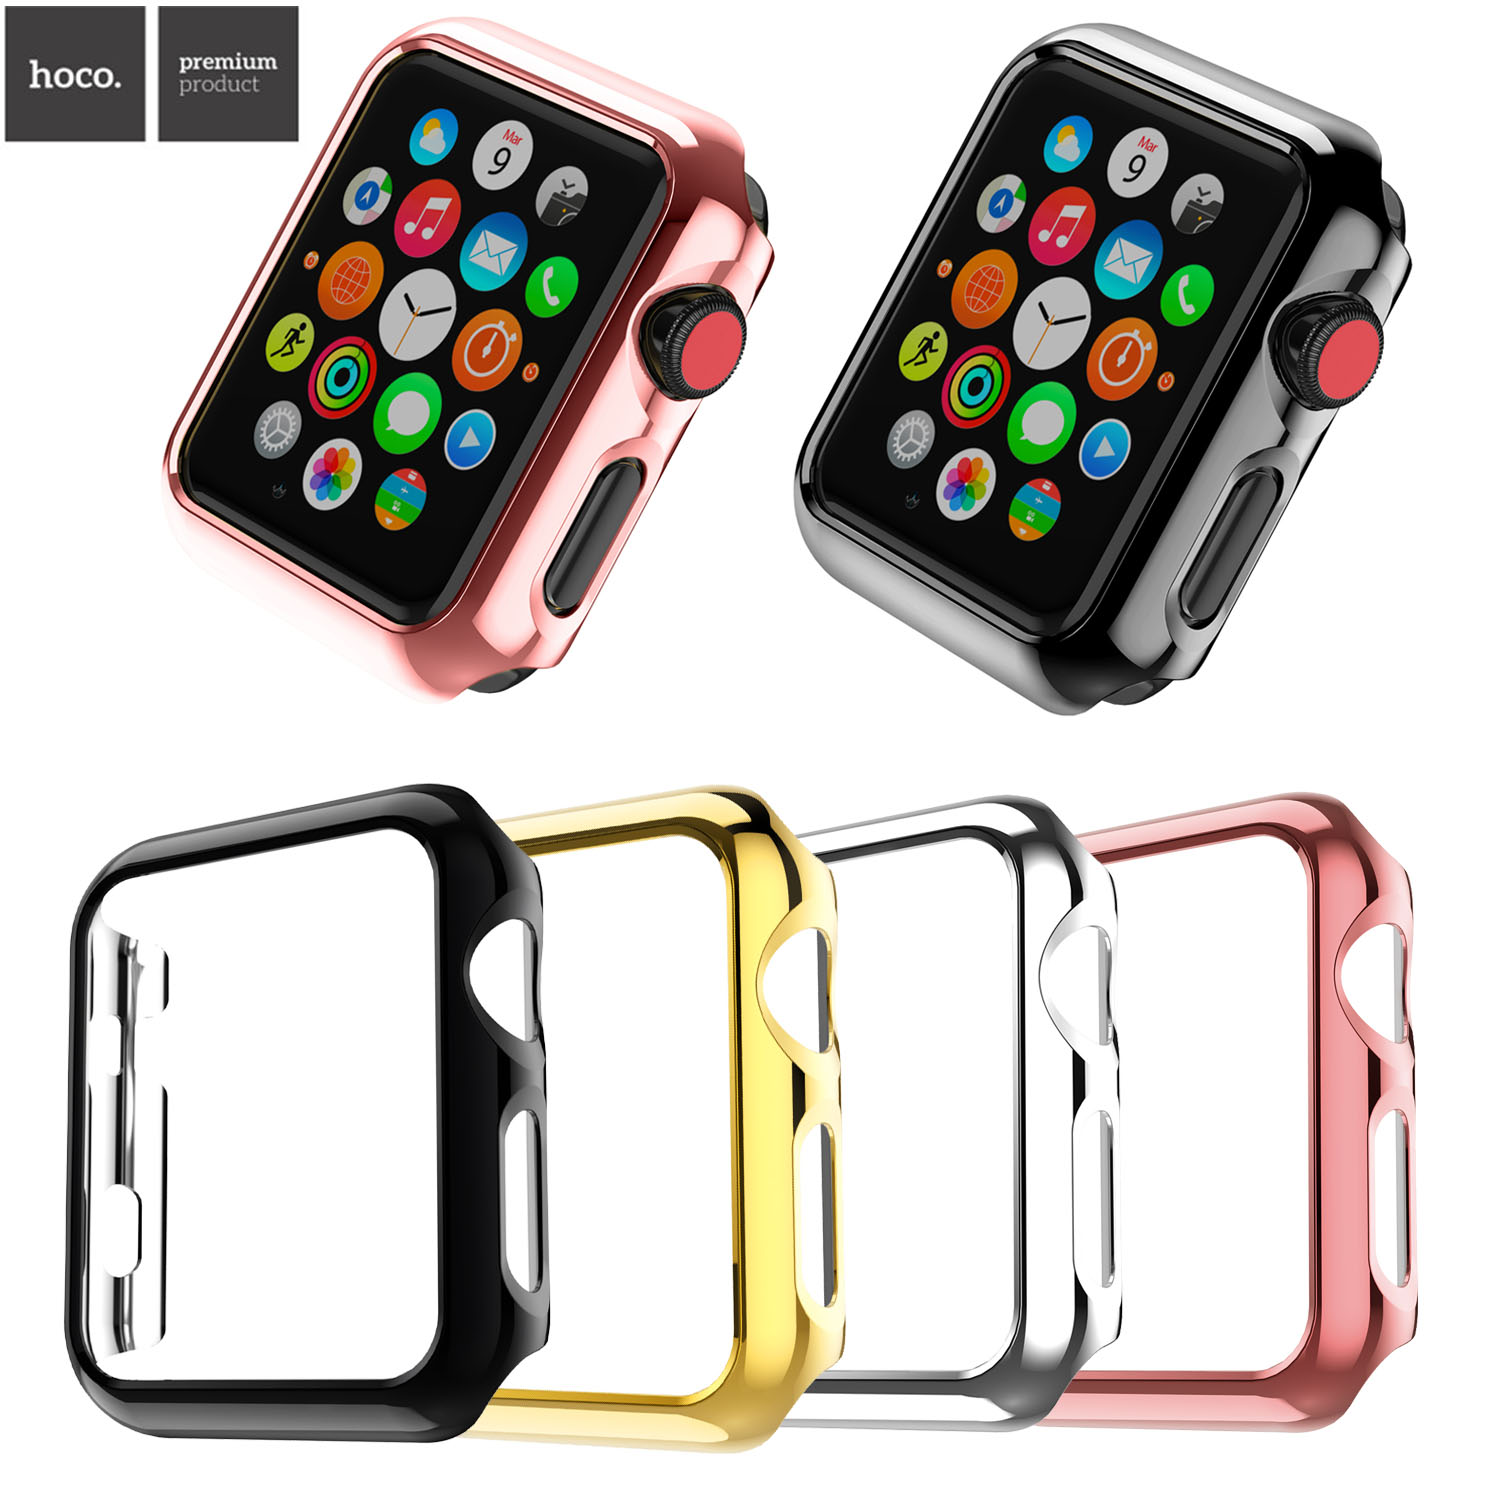 HOCO Brand Protection Hard Plastic Bumper Case for Apple Watch Series 3 Cover for iWatch Series 2 42mm 38mm Watch Cover Band new silicone case watch frame for apple watch series 3 2 1 38mm 42mm watch band full protection case cover for apple iwatch 3 2